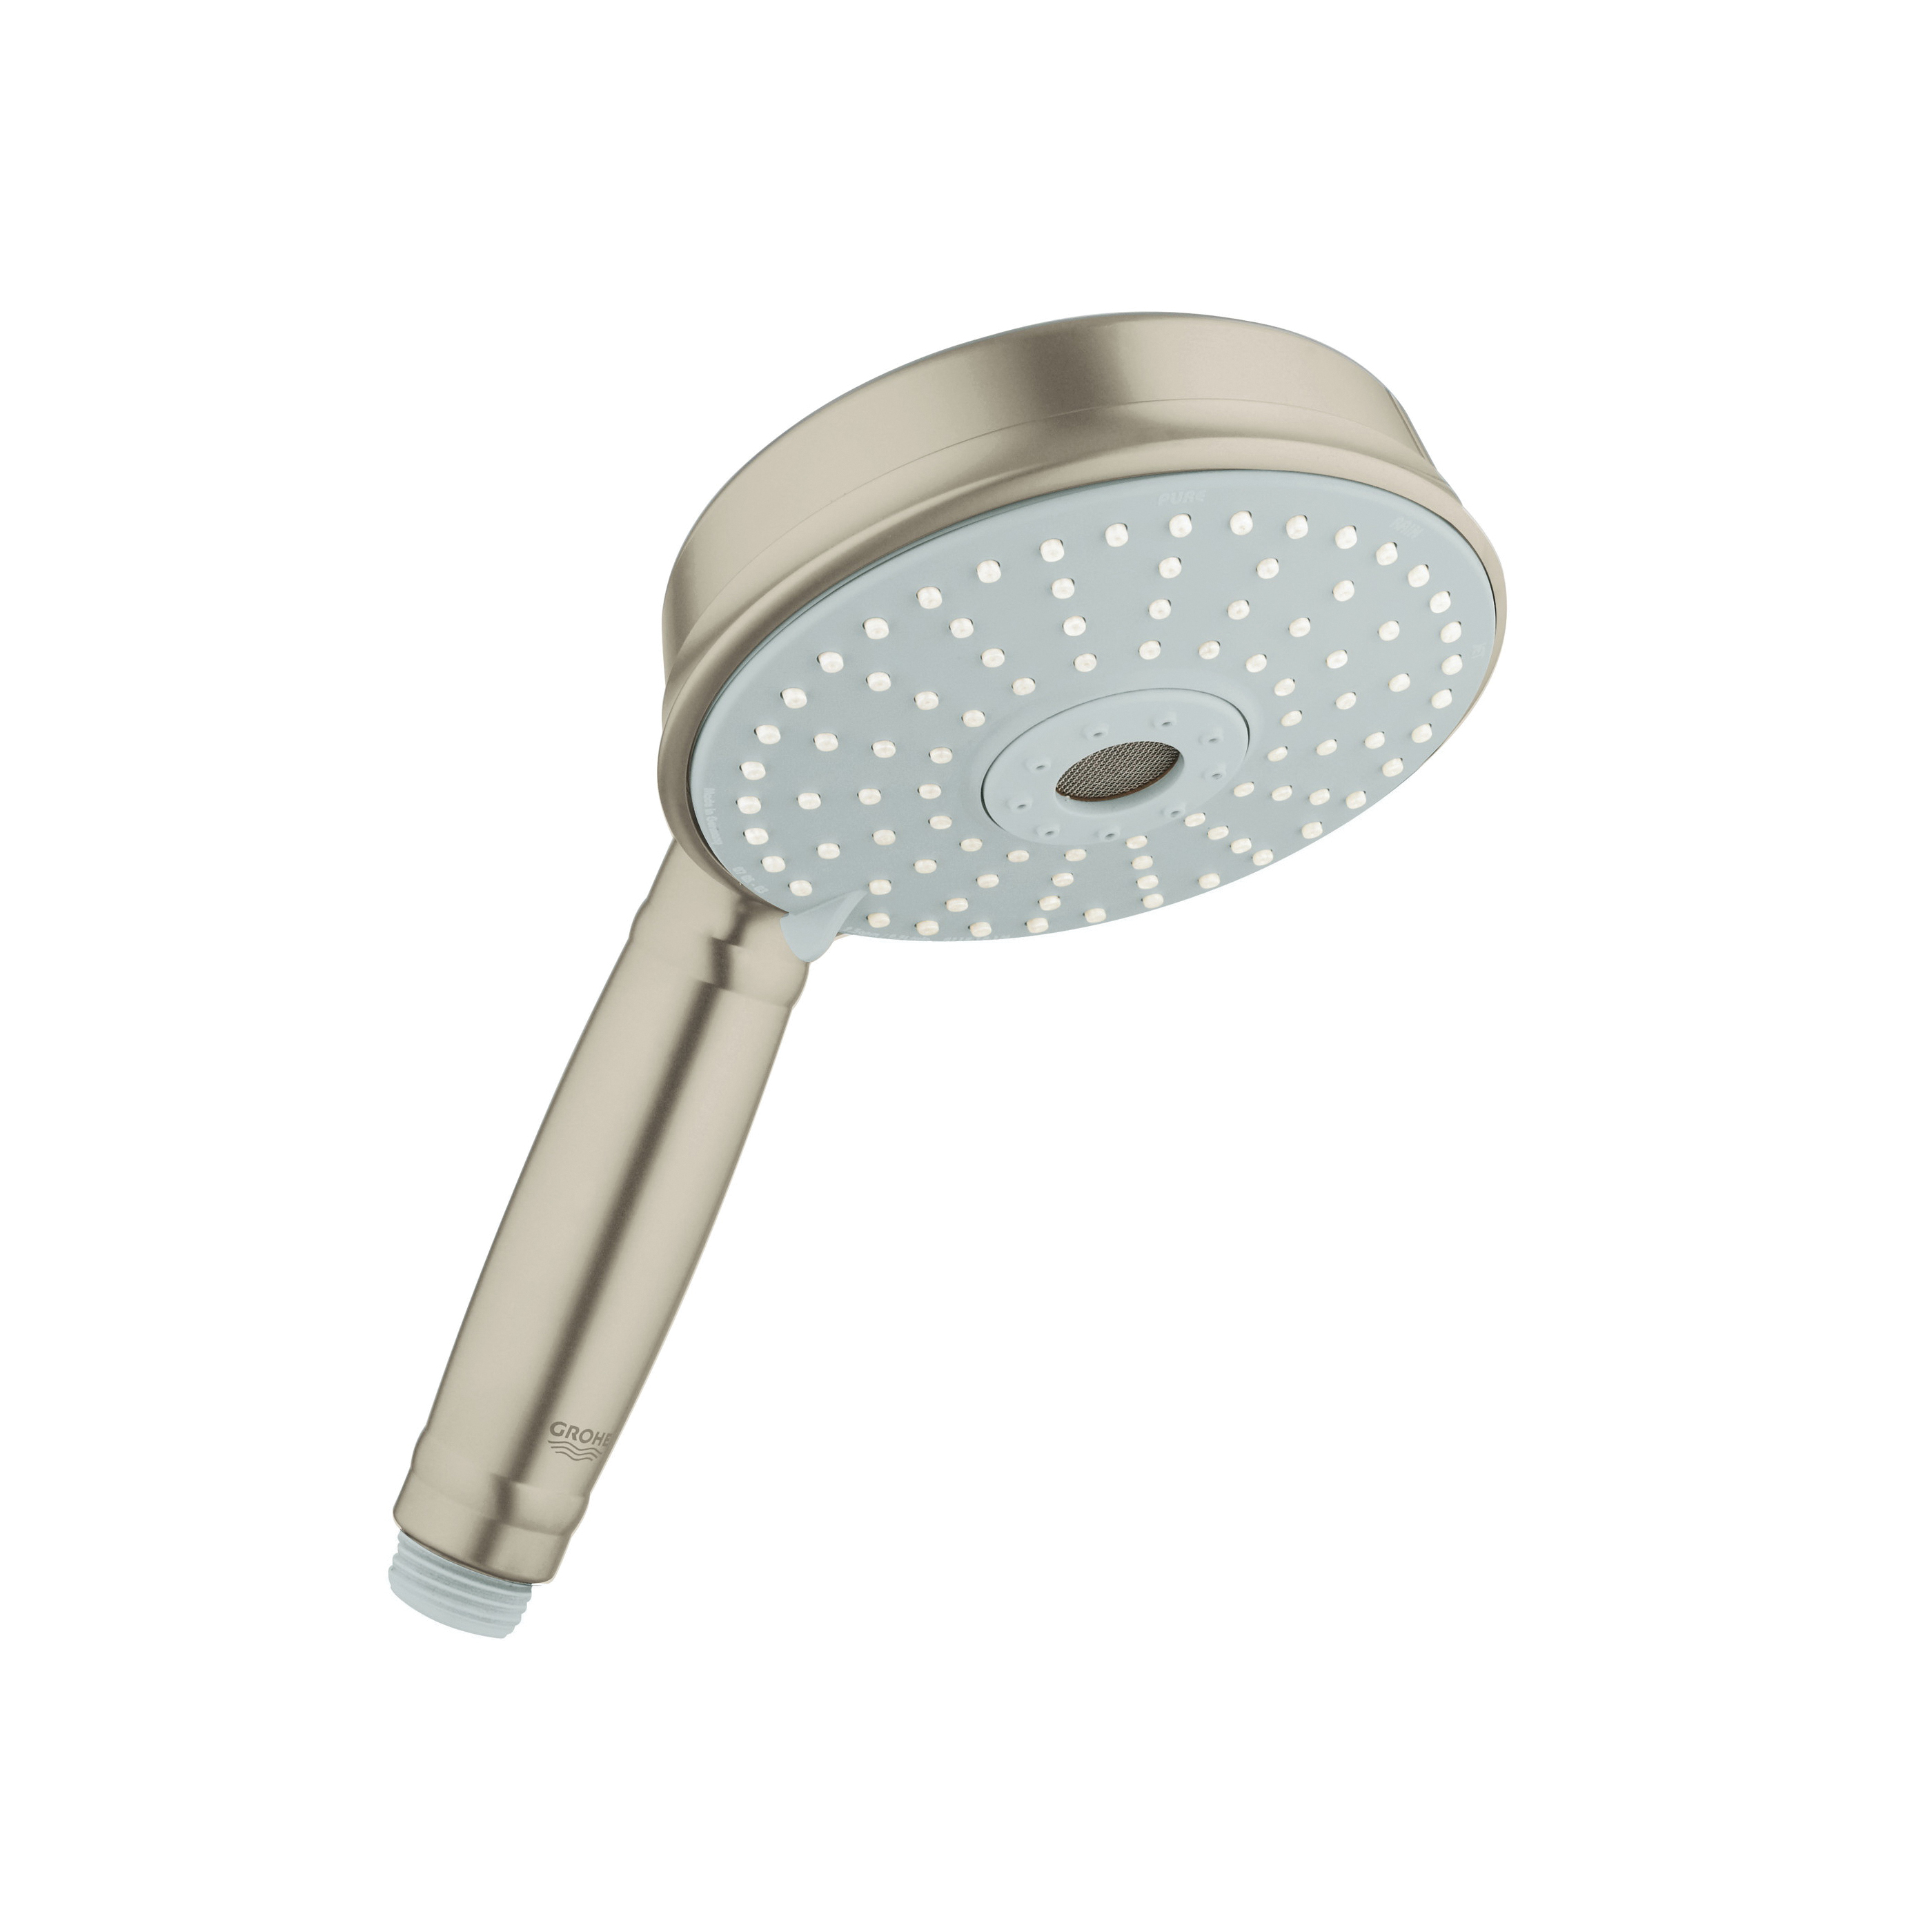 GROHE 27129EN0 Rainshower® Rustic 130 Shower Head, 2.5 gpm, 3 Sprays, Import